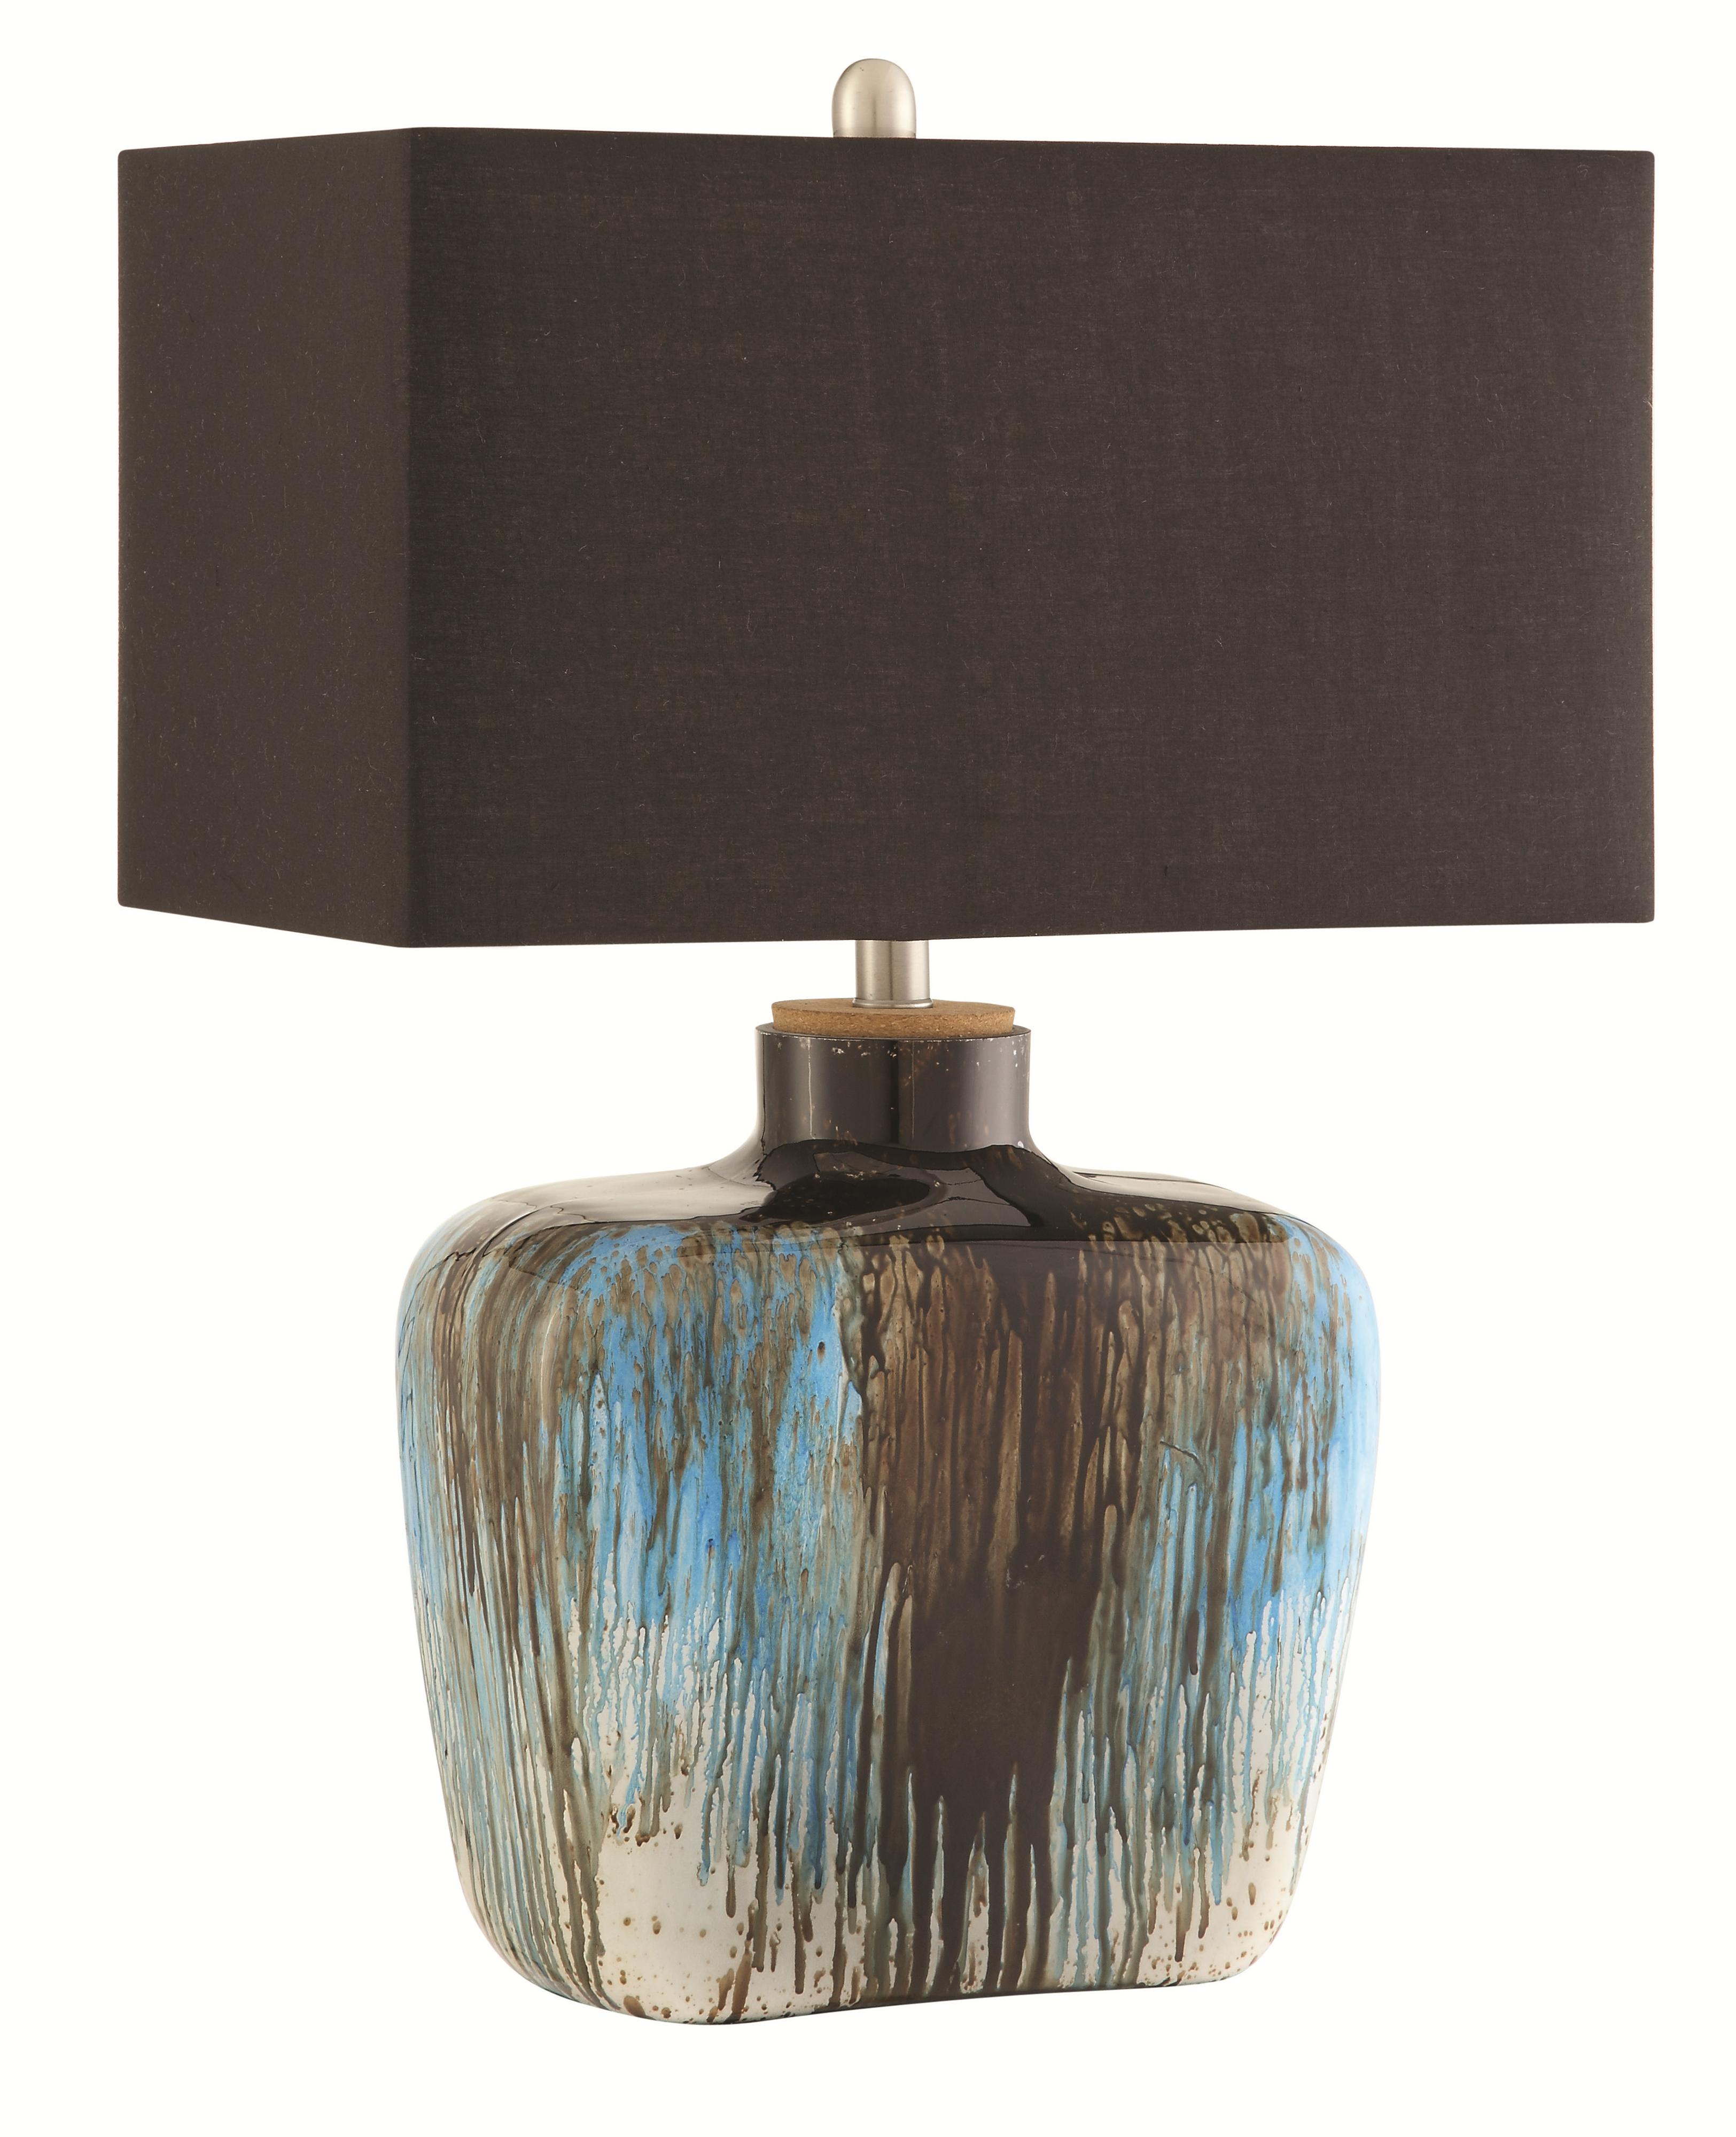 Coaster Table Lamps Table Lamp - Item Number: 901246